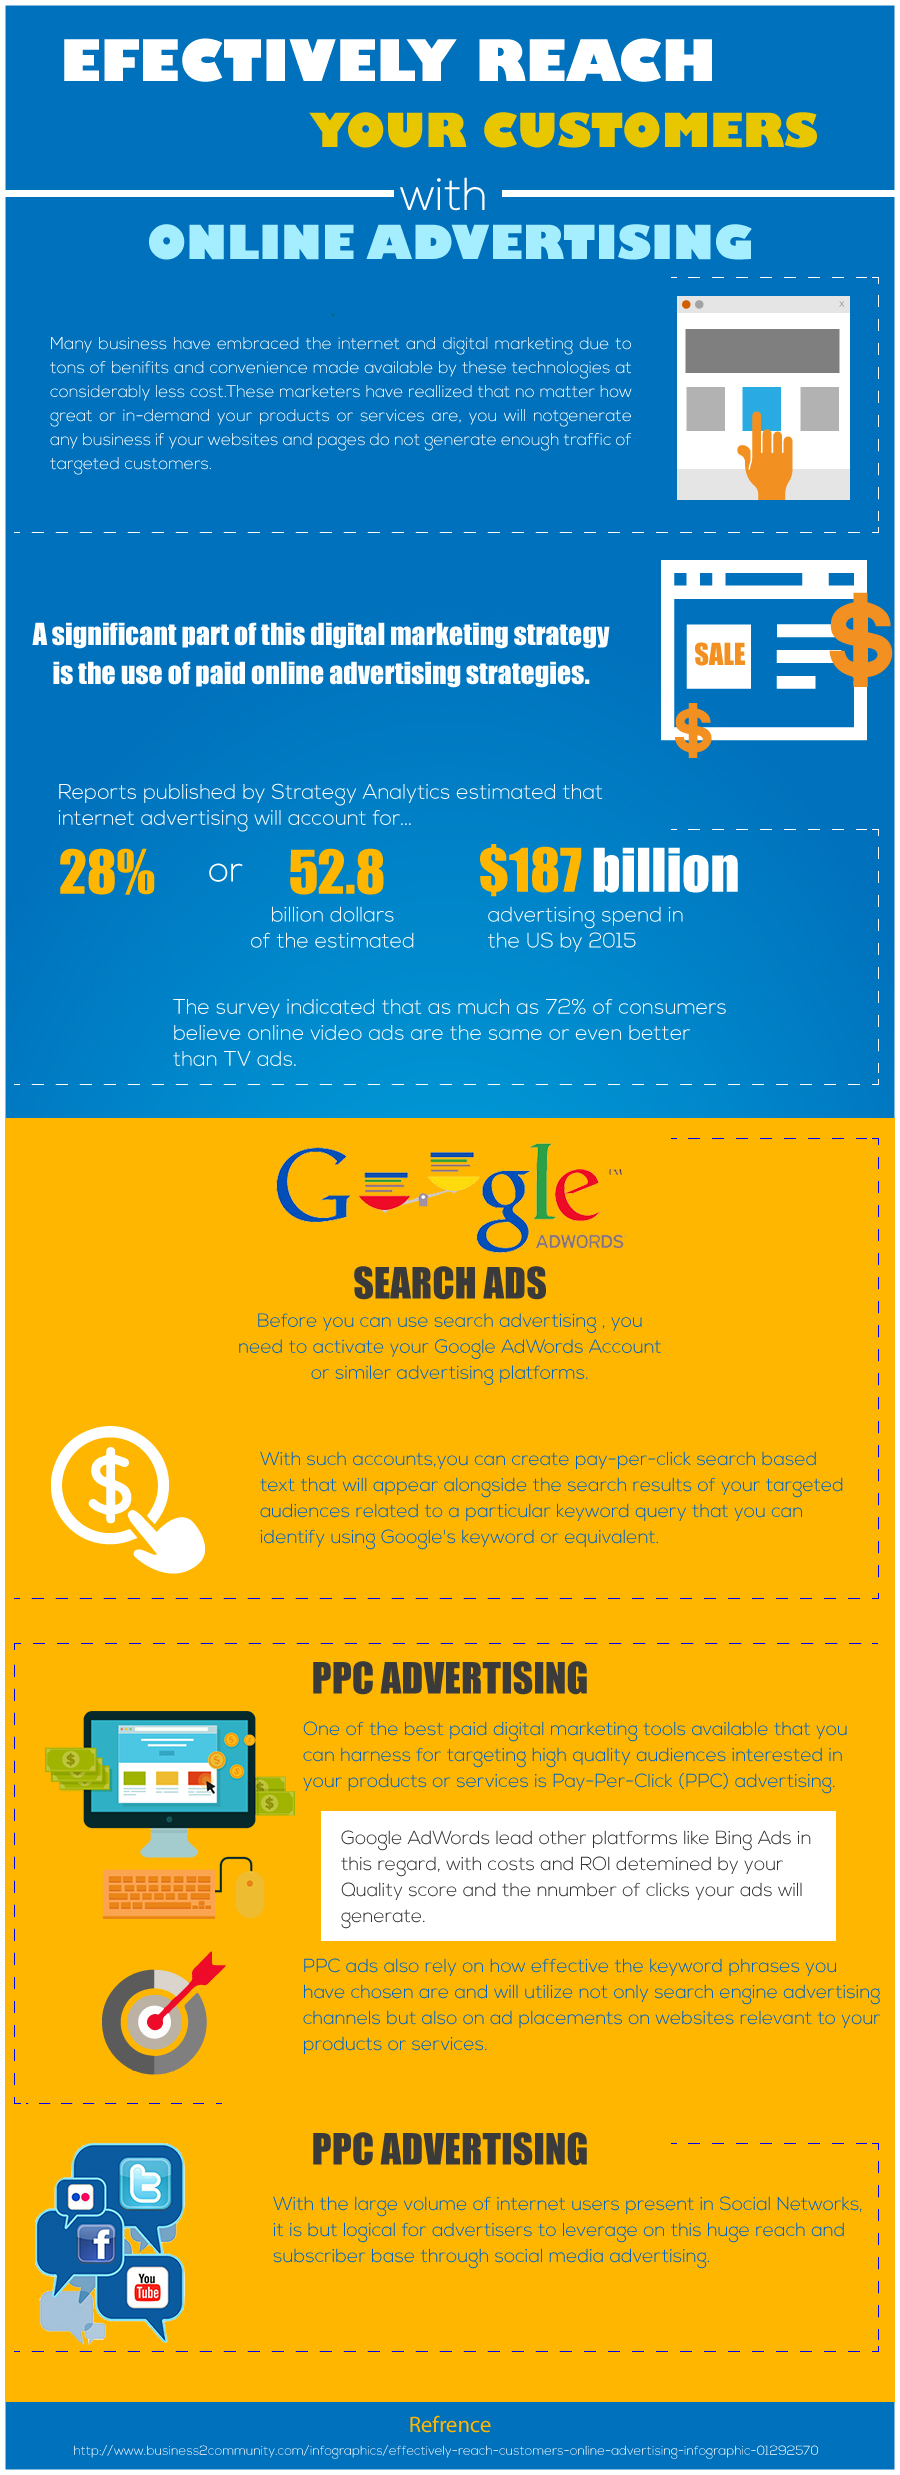 Efectively Reach Your Customers With Online Advertising